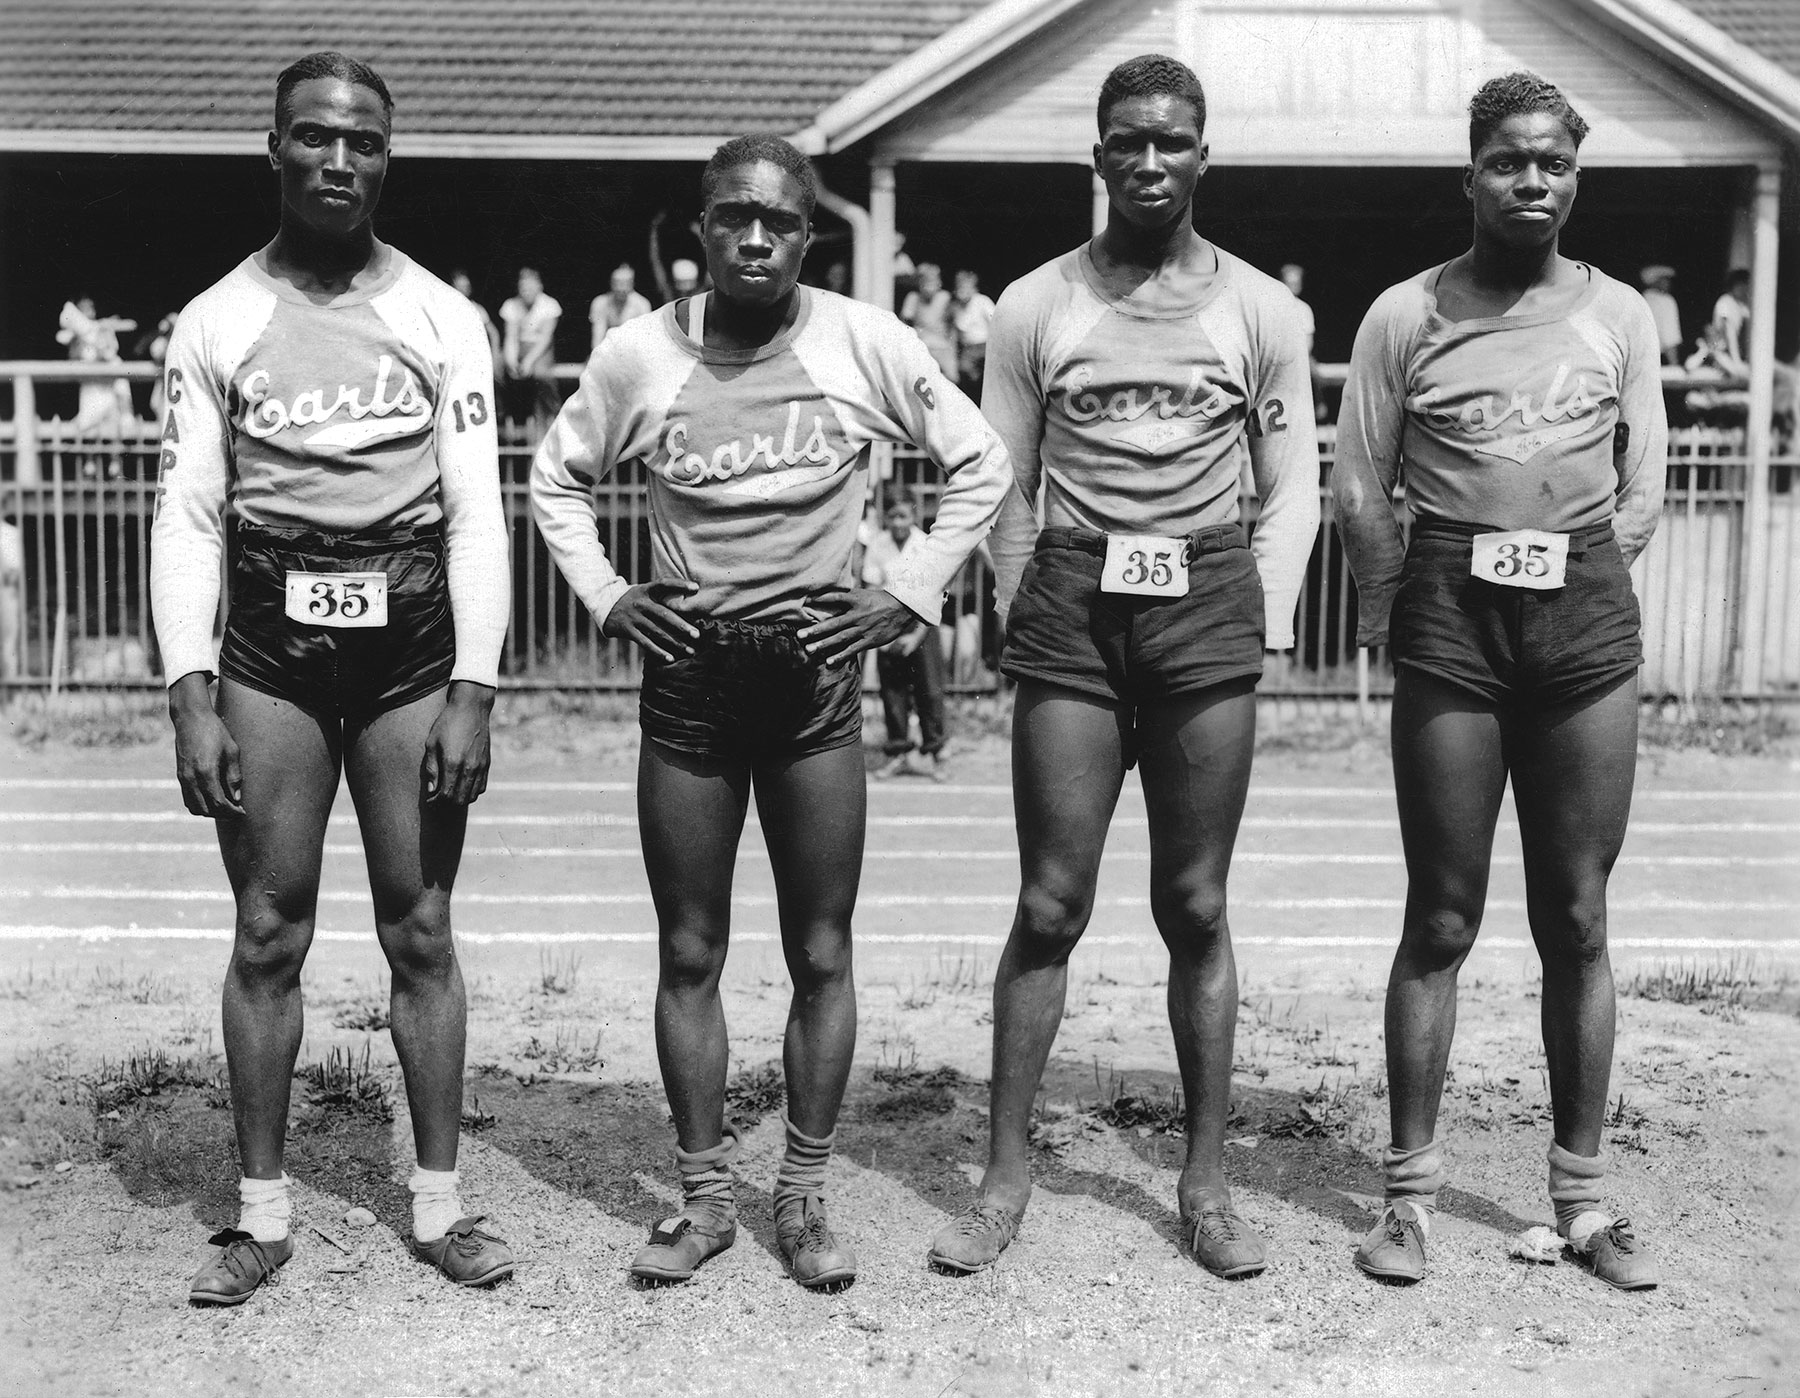 Numerous athletes used the Douglas Park Natatorium and its oval track including the Earls, an African-American track team of late 1930s.  Chicago Public Library Special Collections, Chicago Park District Archives, Photos .